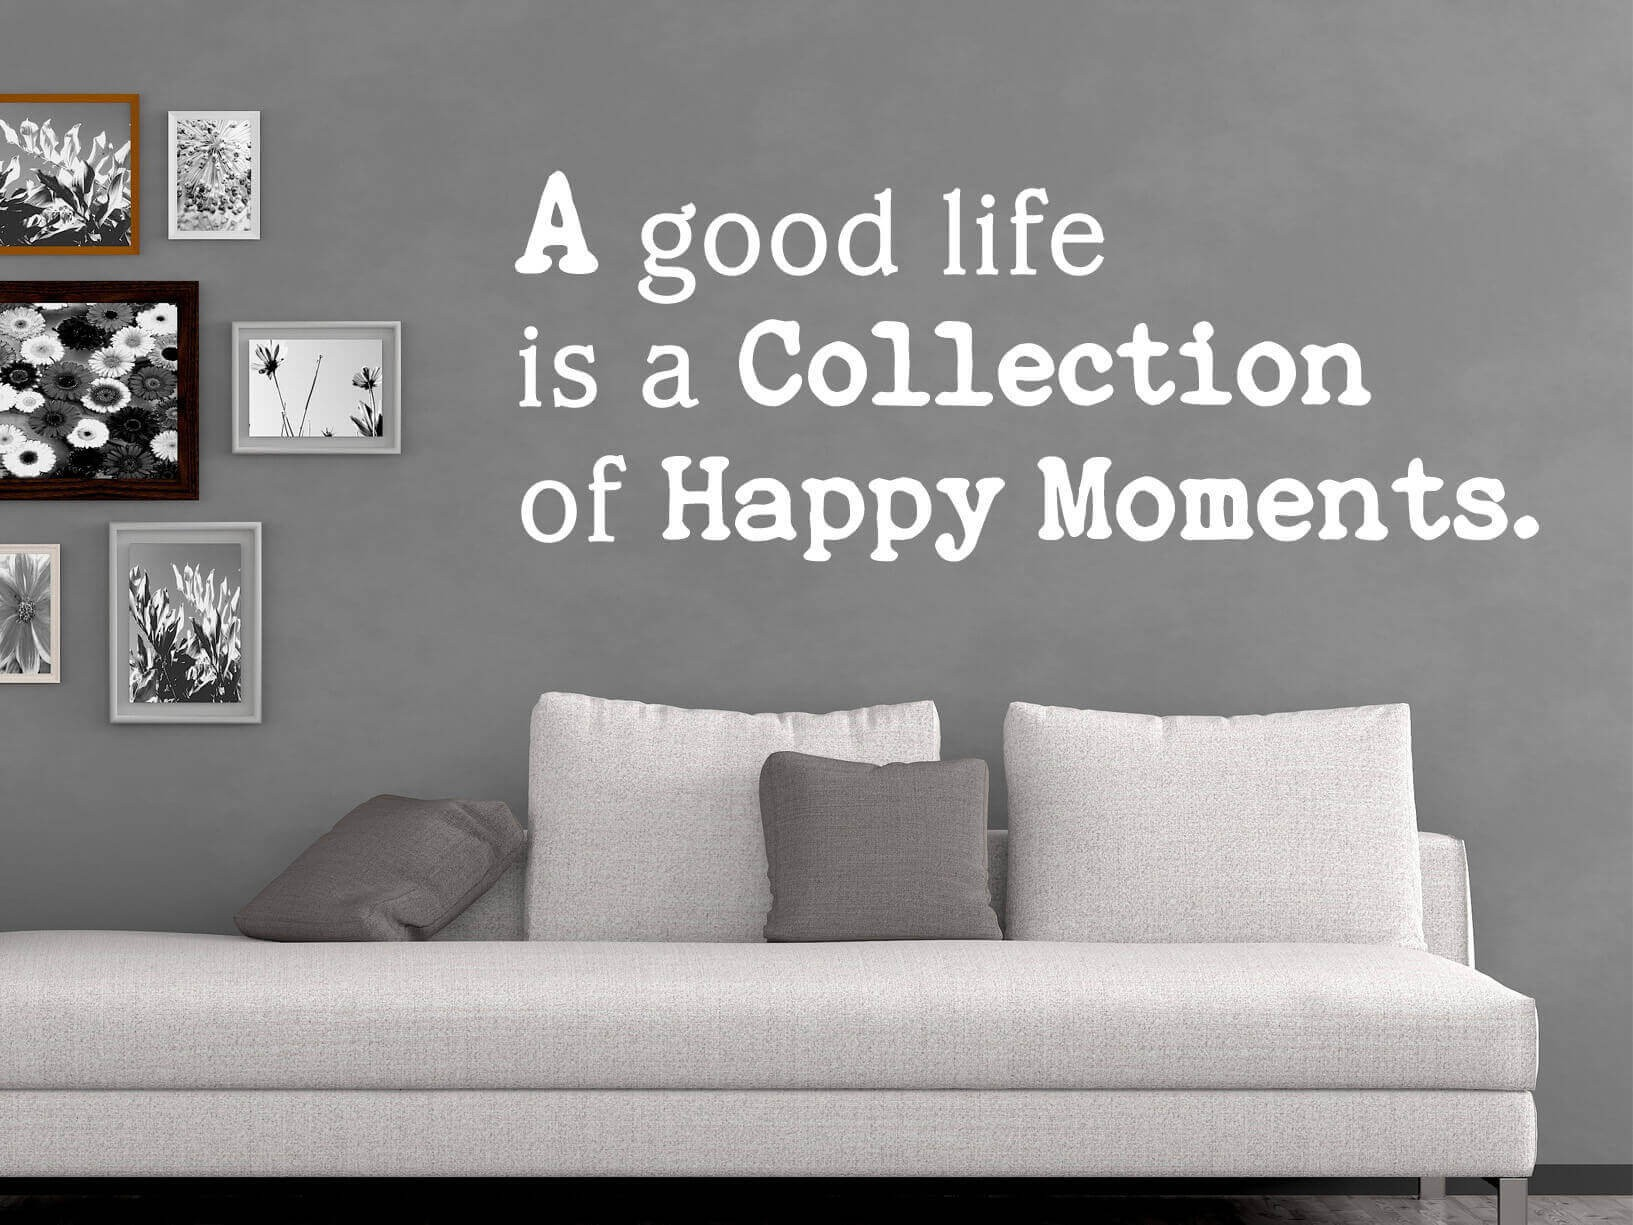 """Muursticker """"A Good Life Is A Collection Of Happy Moments"""""""